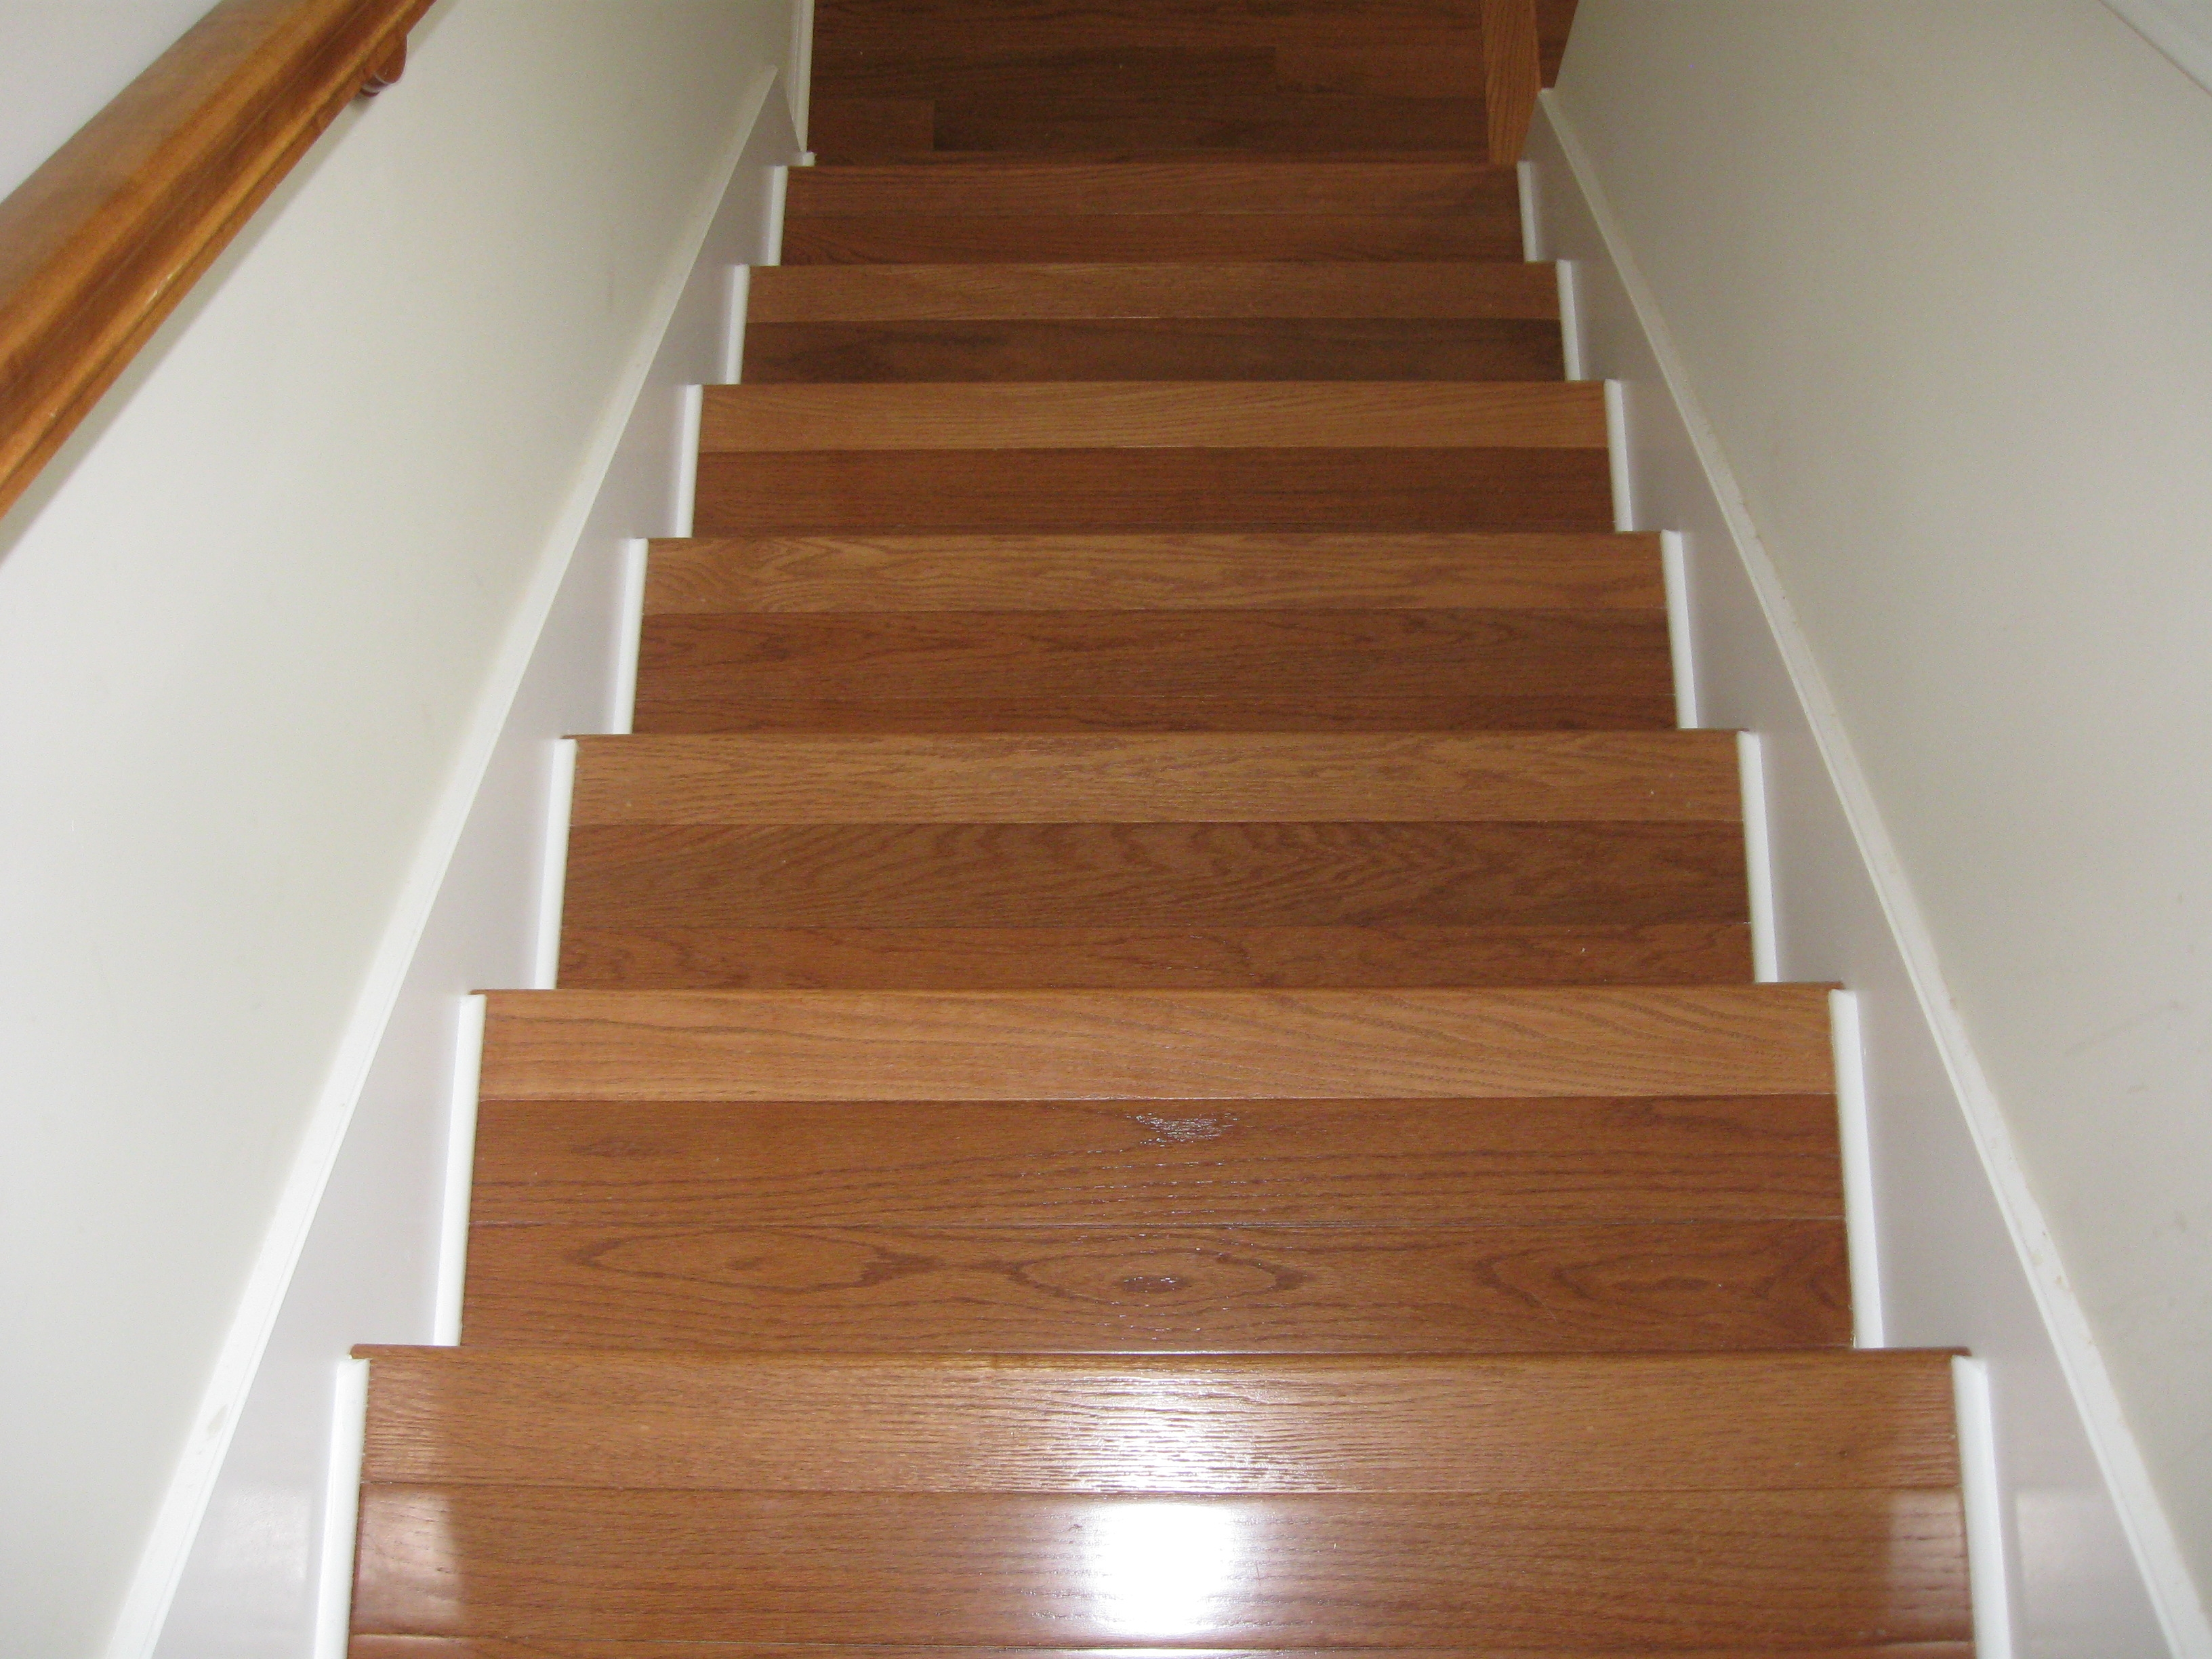 Wood Stair Treads Tips Latest Door Stair Design Pertaining To Stair Treads For Wooden Stairs (#20 of 20)